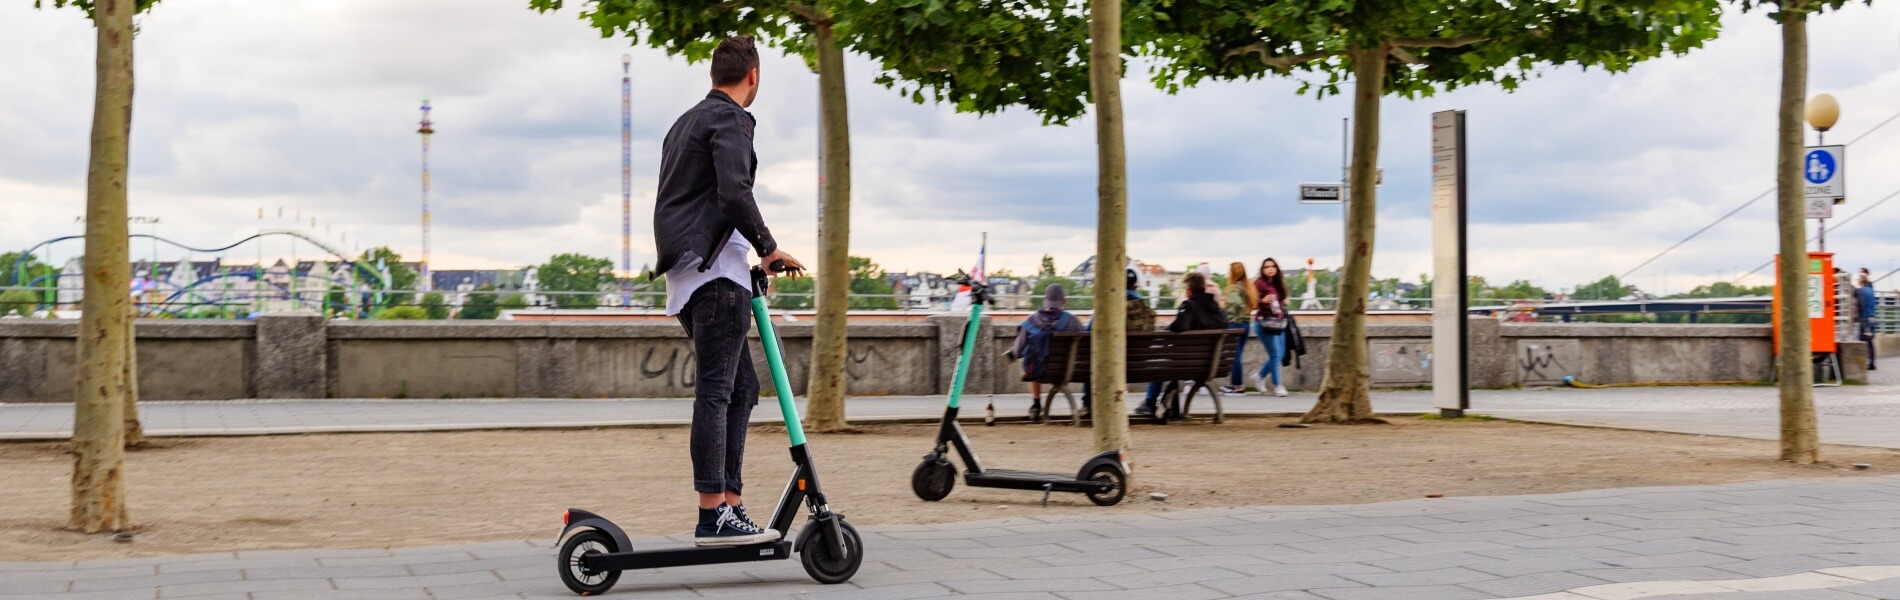 E-scooter mania or efficient two-wheeler for urban last mile